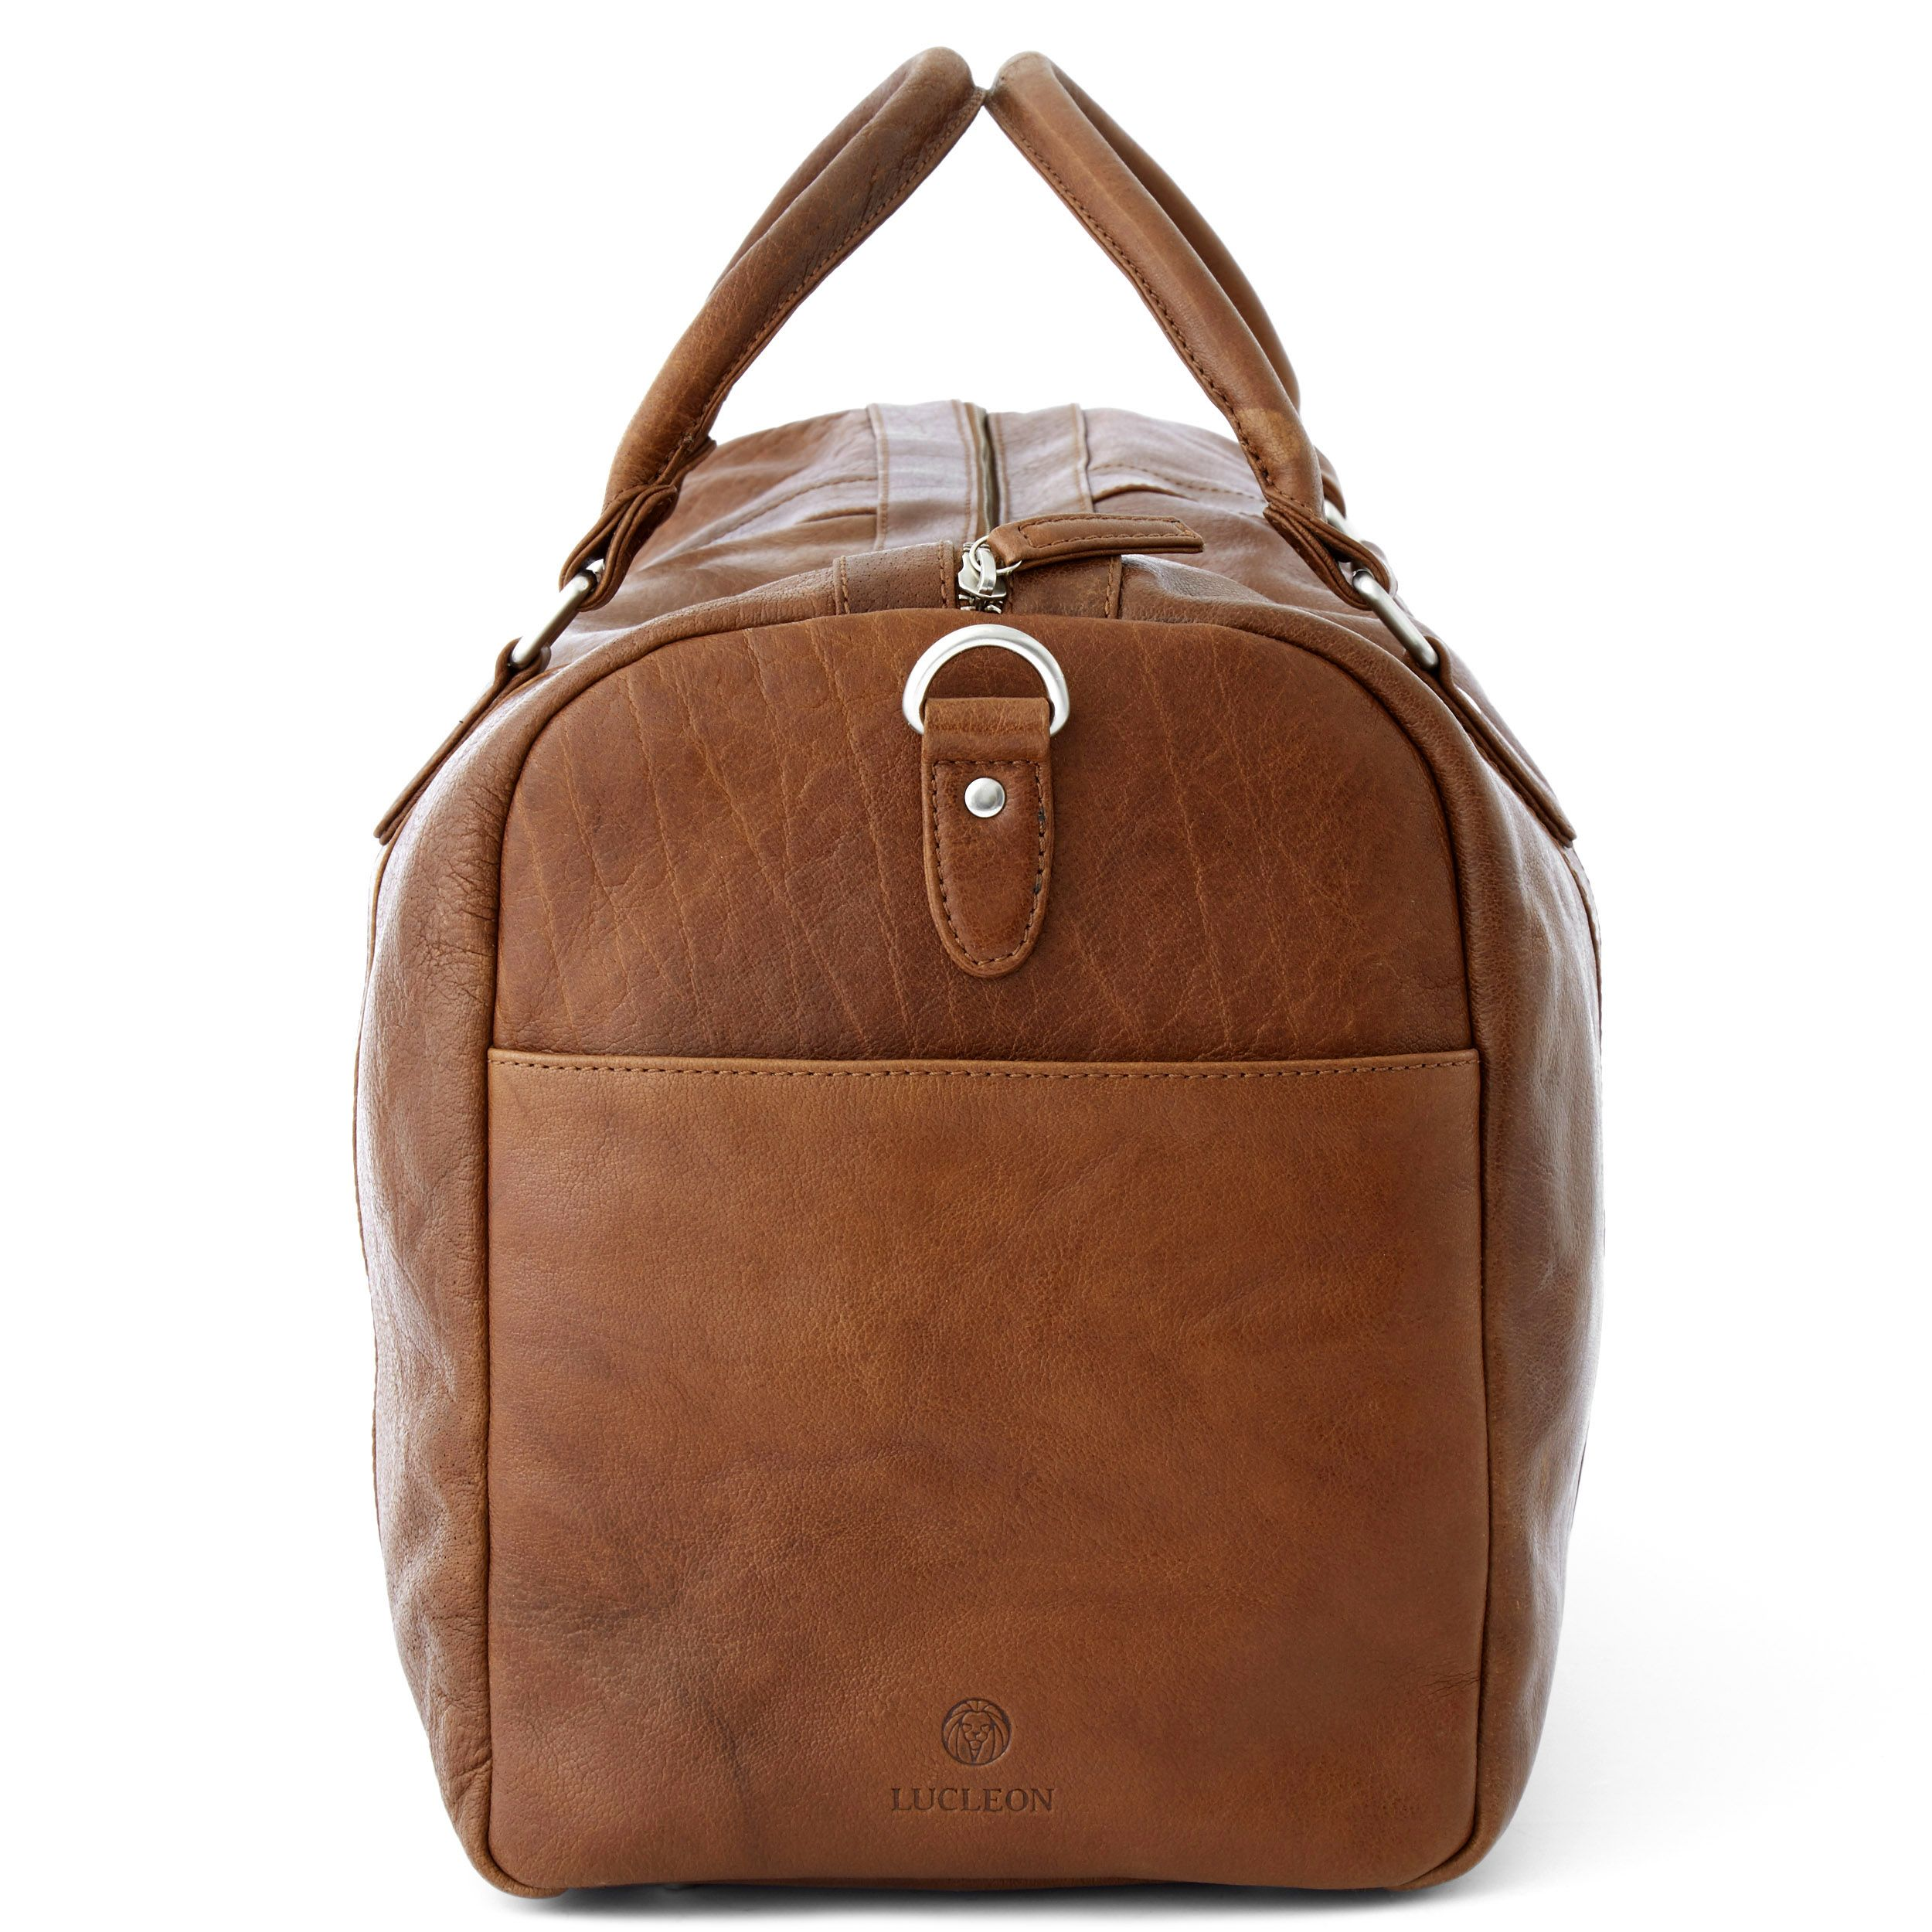 Photo of Tan California Duffel Bag | In stock! | Lucleon